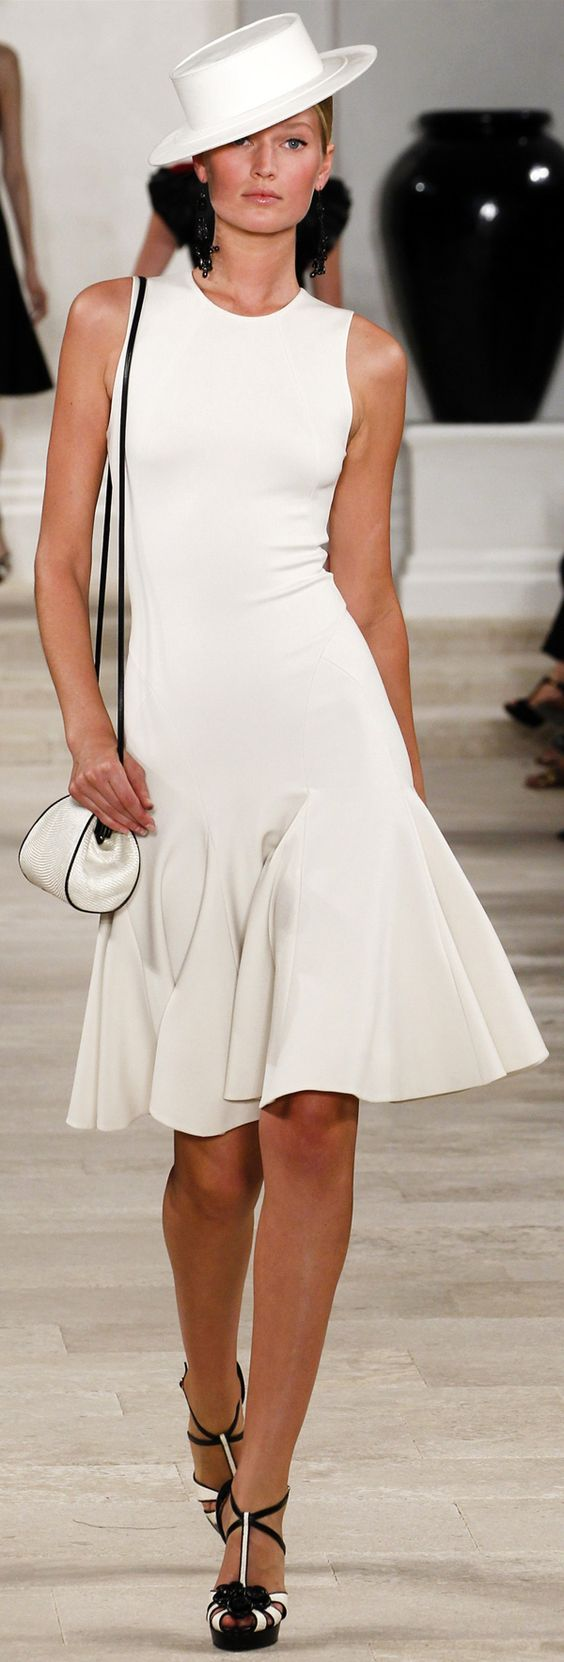 Ralph Lauren Spring Summer Haute Couture RTW 2013 | The House of Beccaria